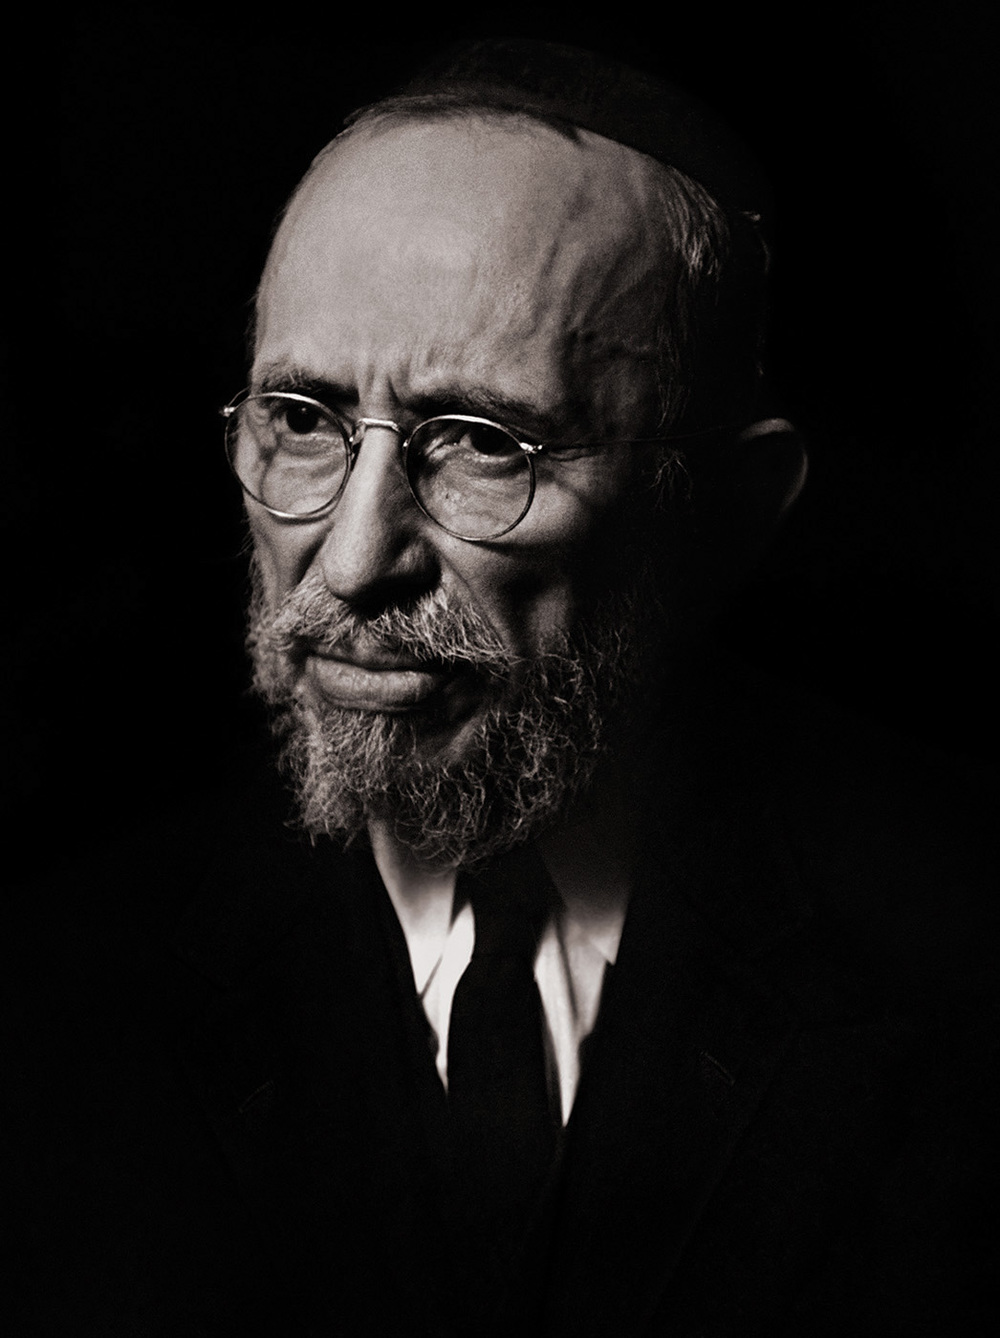 Rabbi Schoenfeld, New York, 1940